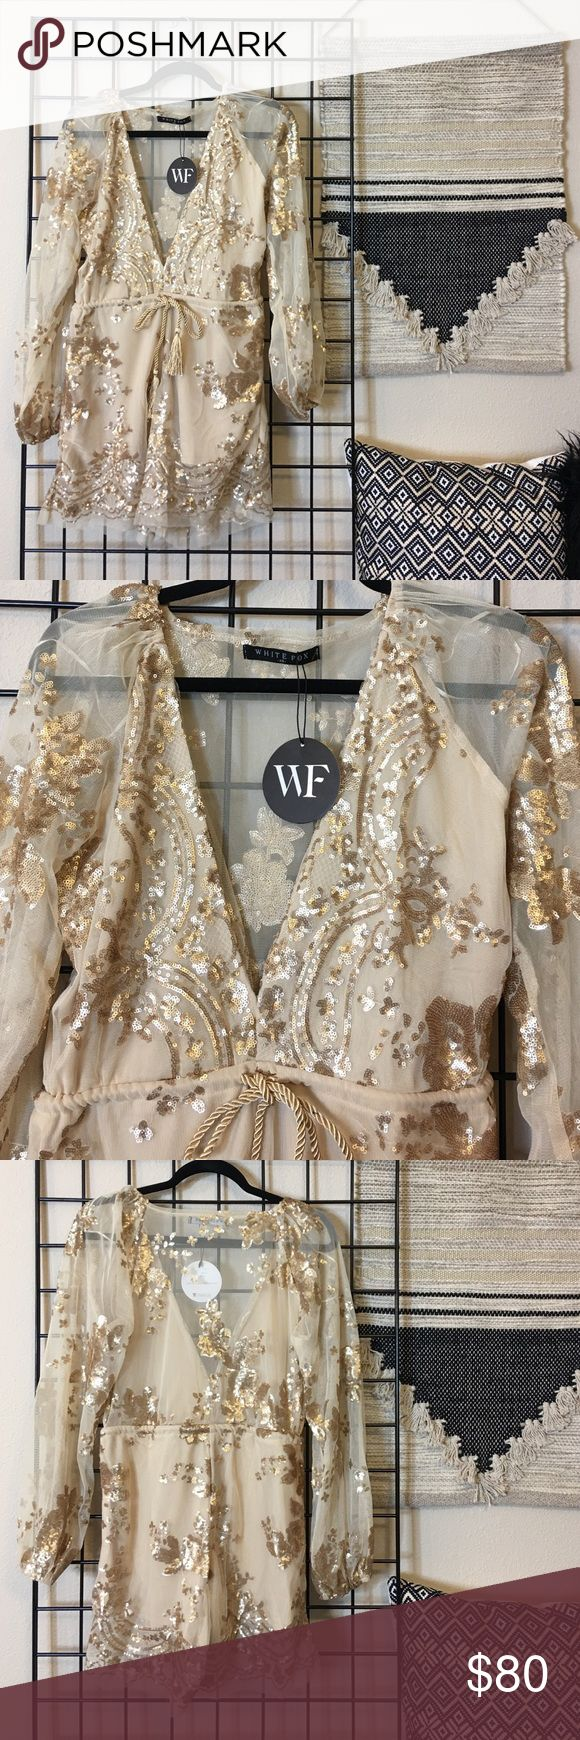 NWT White Fox Boutique Gold Playsuit Brand New with tags. Never worn. Recently purchased. Gold sequin embellished romper from White Fox Boutique. Size XS but fits like a S. I'm 5'2, 25in waist and it's big on me. Low cut front and rope tie around waist. white fox boutique Dresses Long Sleeve